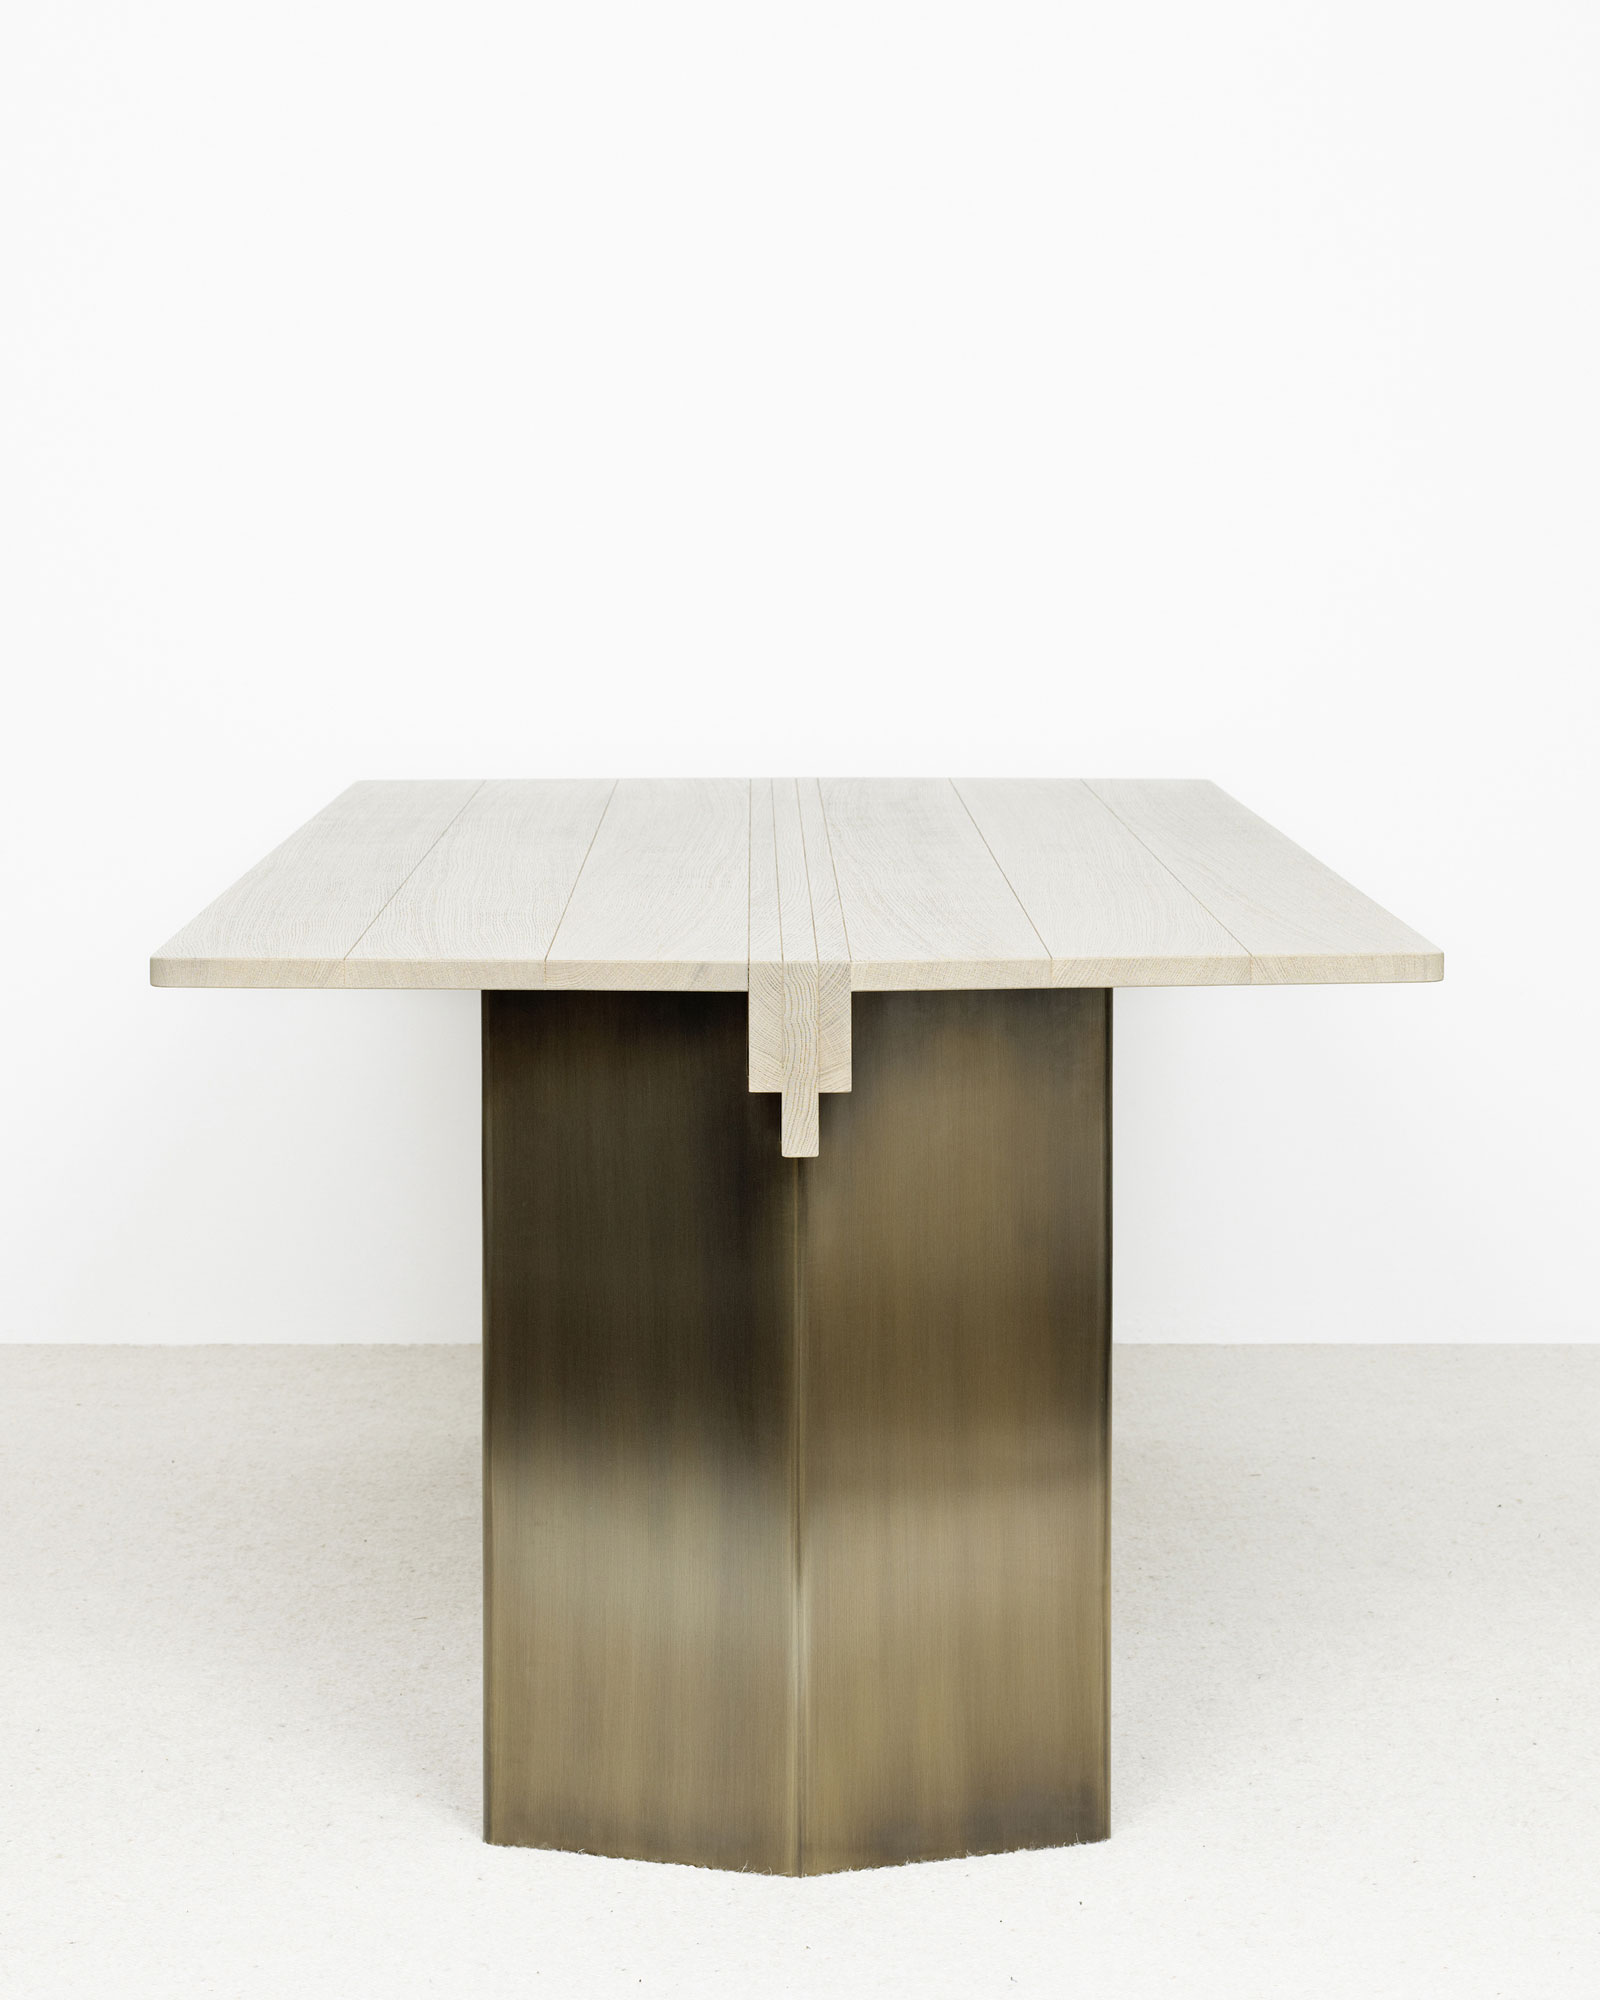 Table Zor 2 - Christophe Delcourt